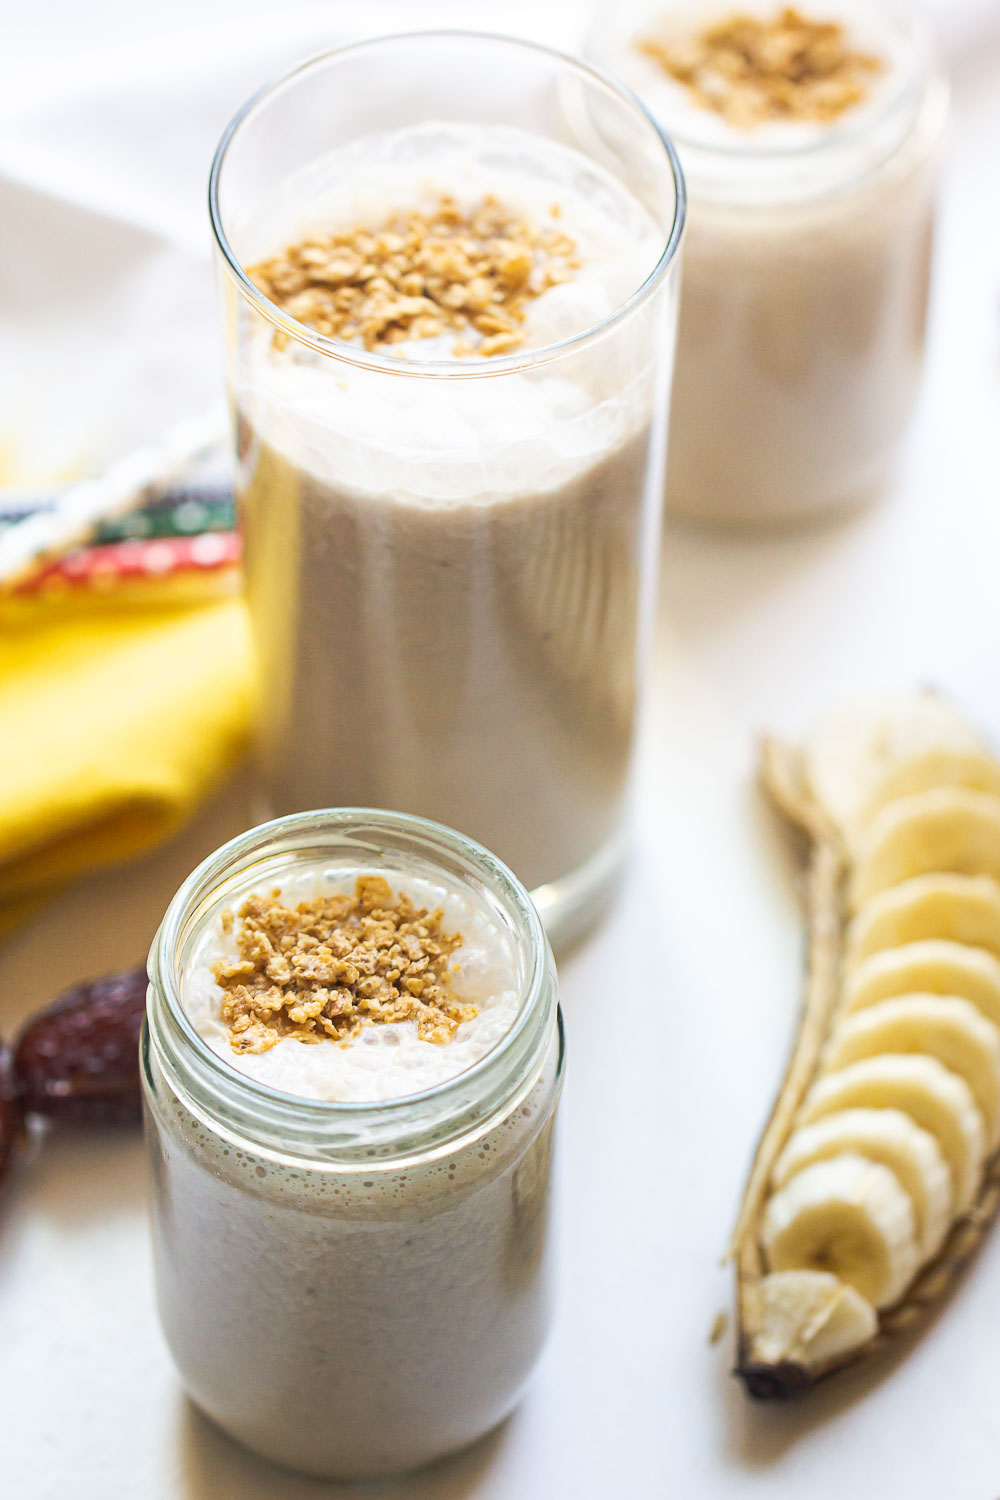 Easy Healthy Banana Smoothie made with 4 ingredients! Naturally sweetened with dates, this simple smoothie is good for a snack or a healthier dessert. So smooth and creamy, this fresh smoothie is refreshing, delicious, and perfect for a busy family.